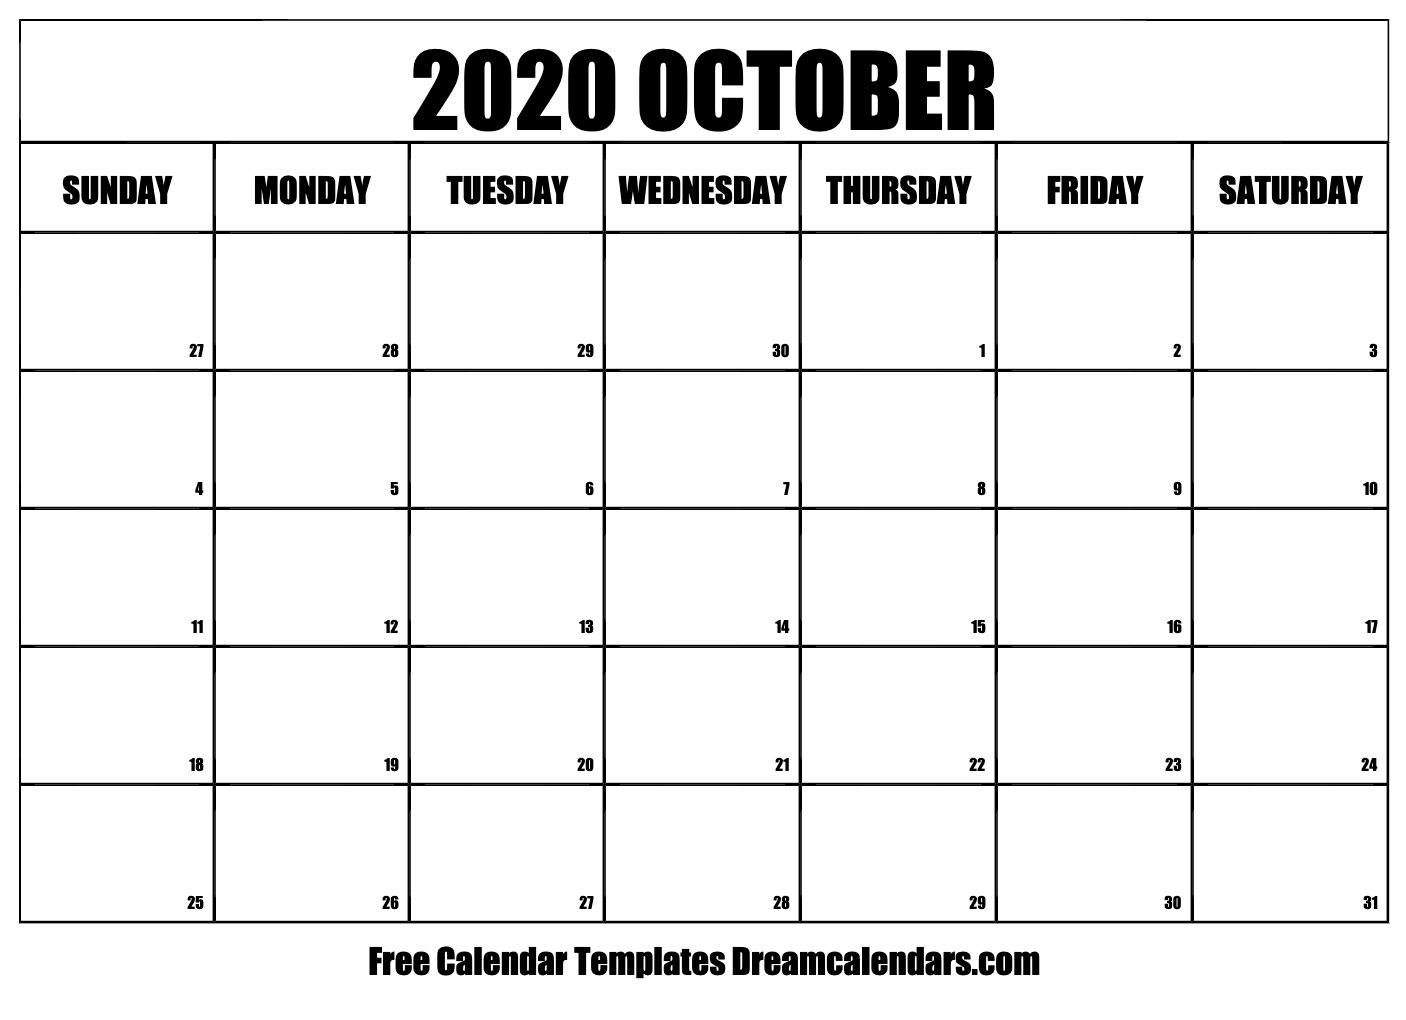 image about Free Printable October Calendar known as Printable Oct 2020 Calendar